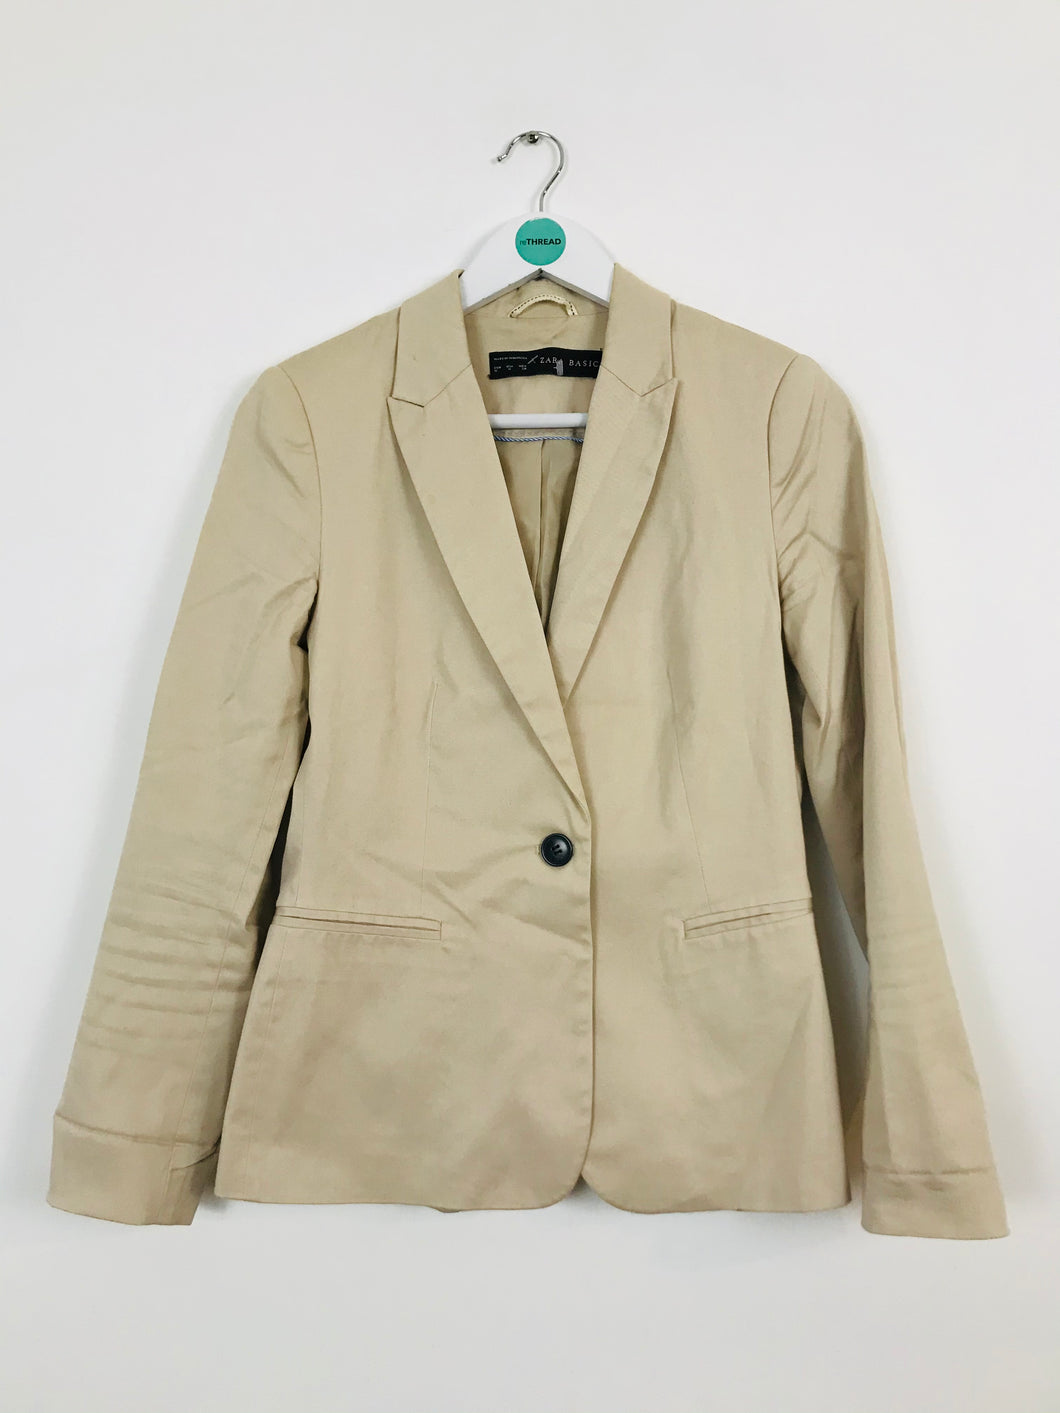 Zara Women's Tailored Blazer Suit Jacket | M | Beige